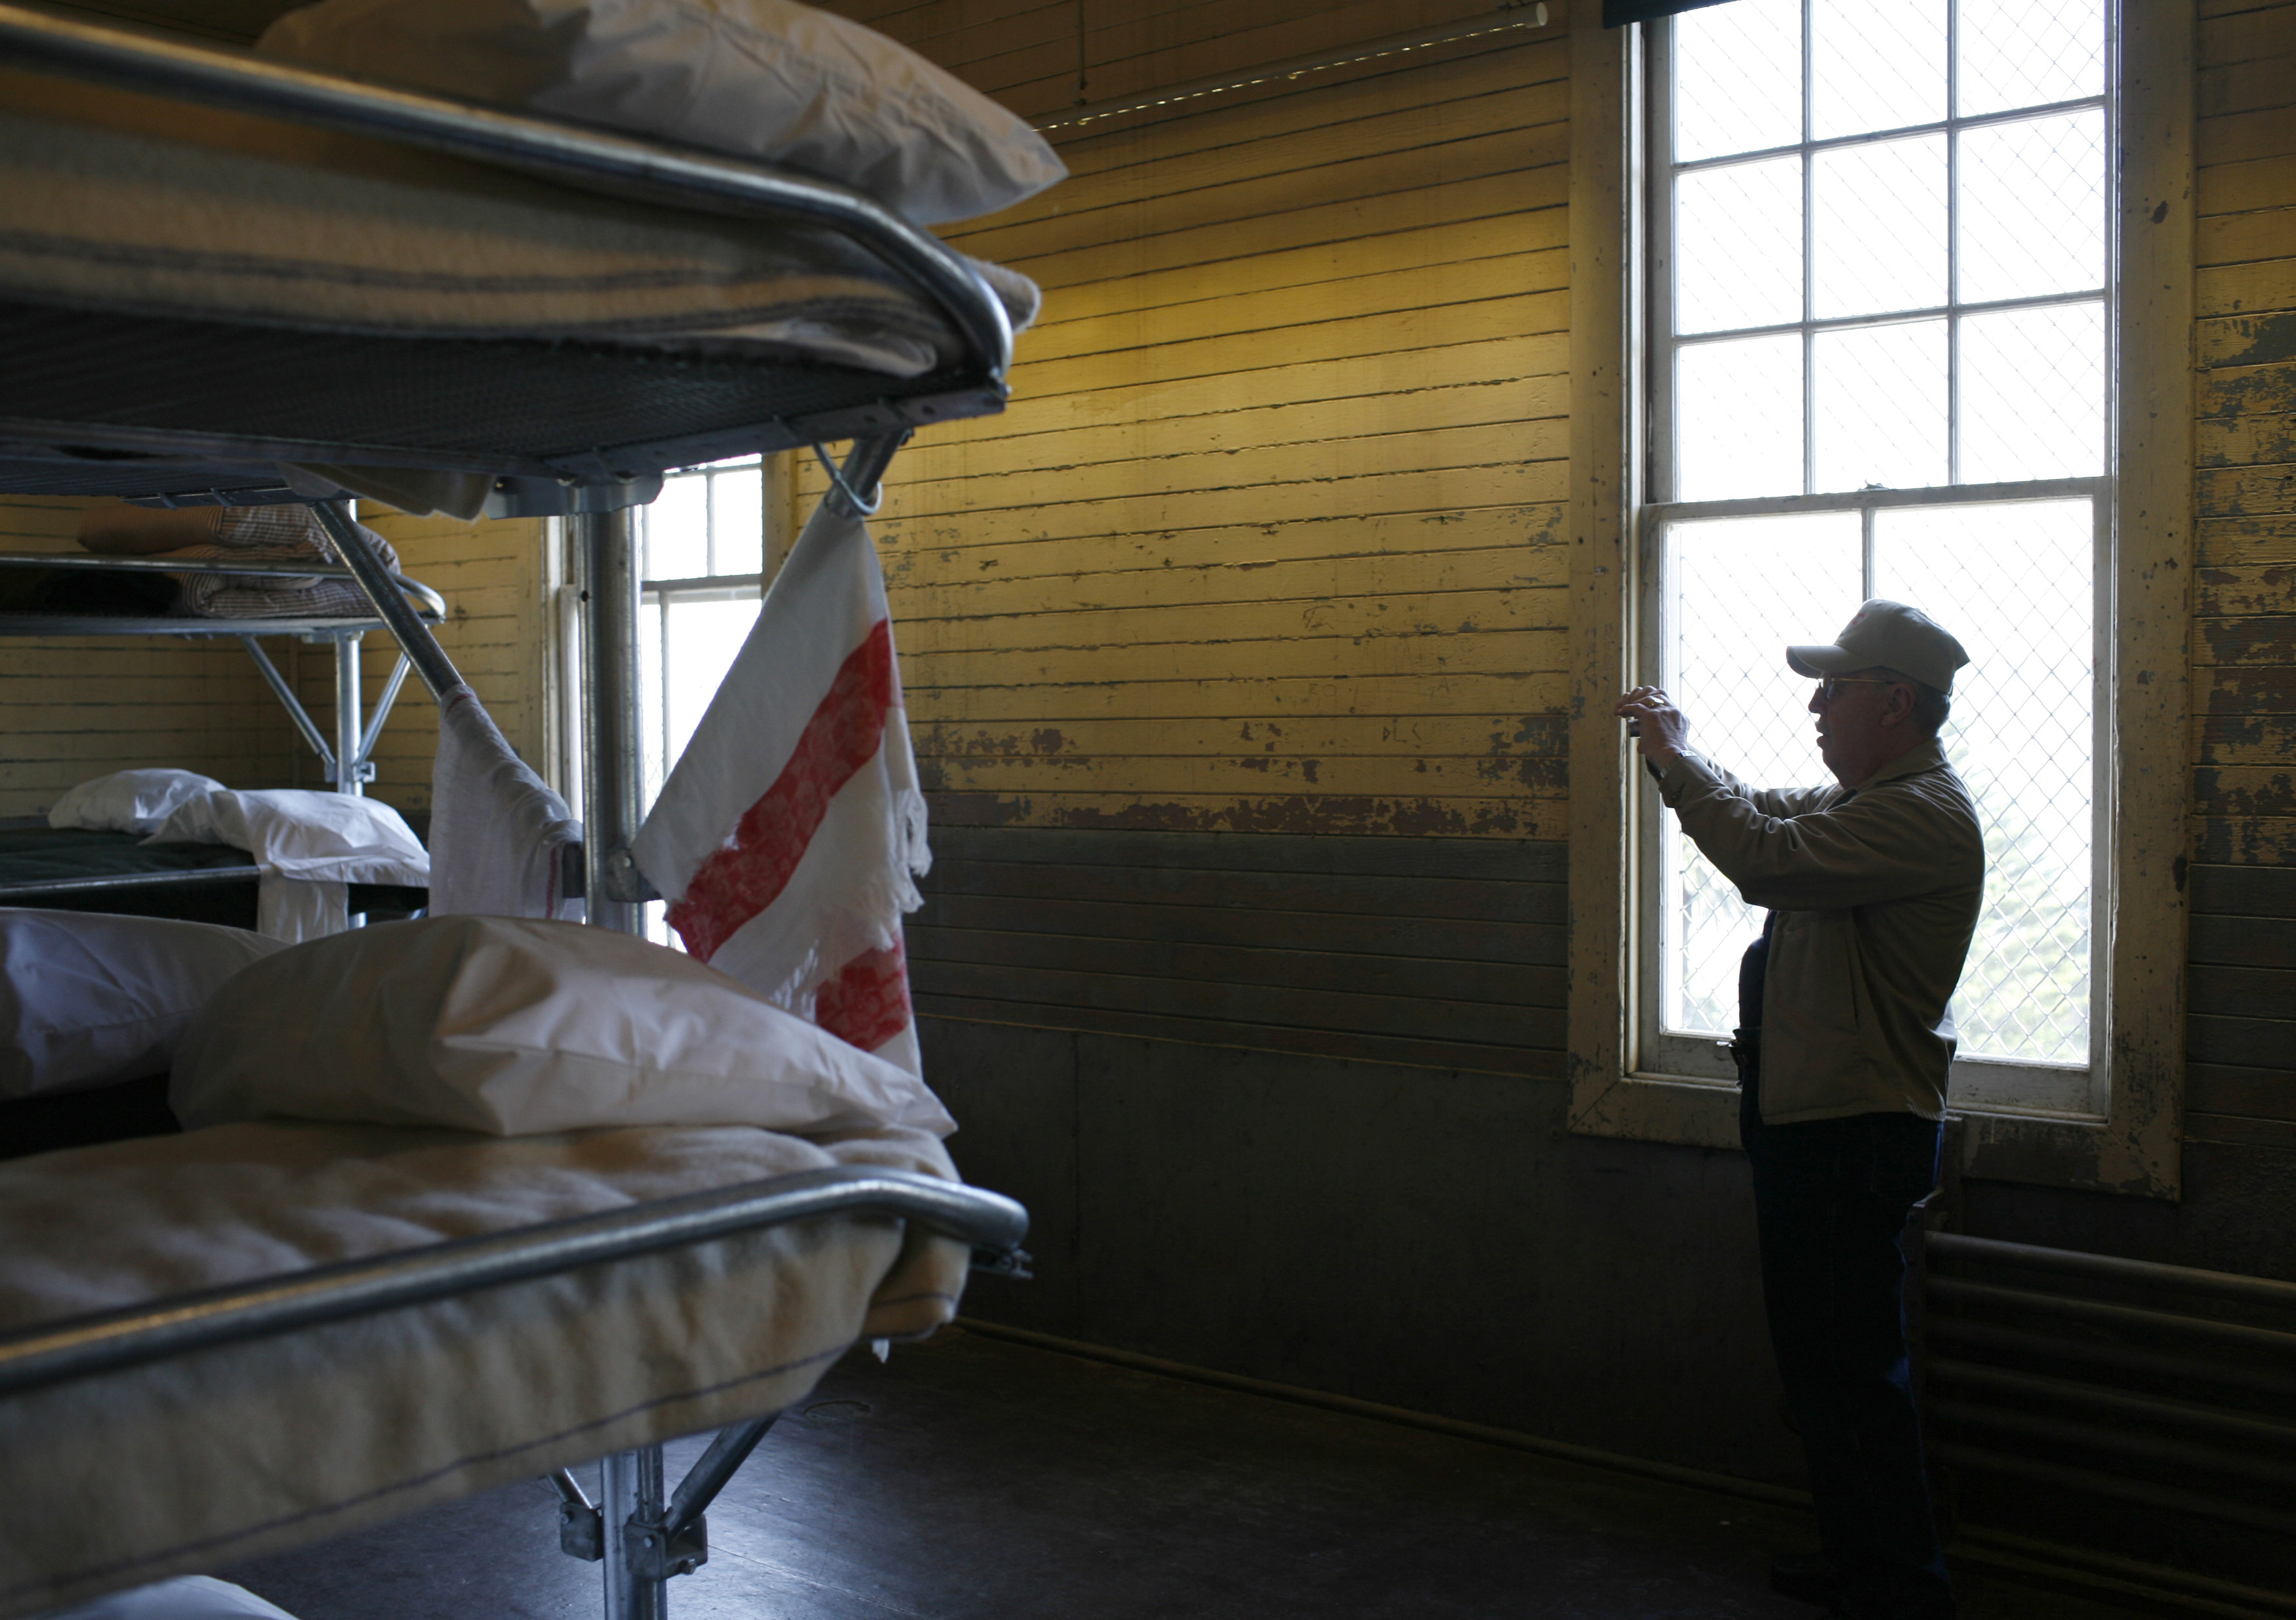 Bunk beds in cell, with man taking photo will cell phone